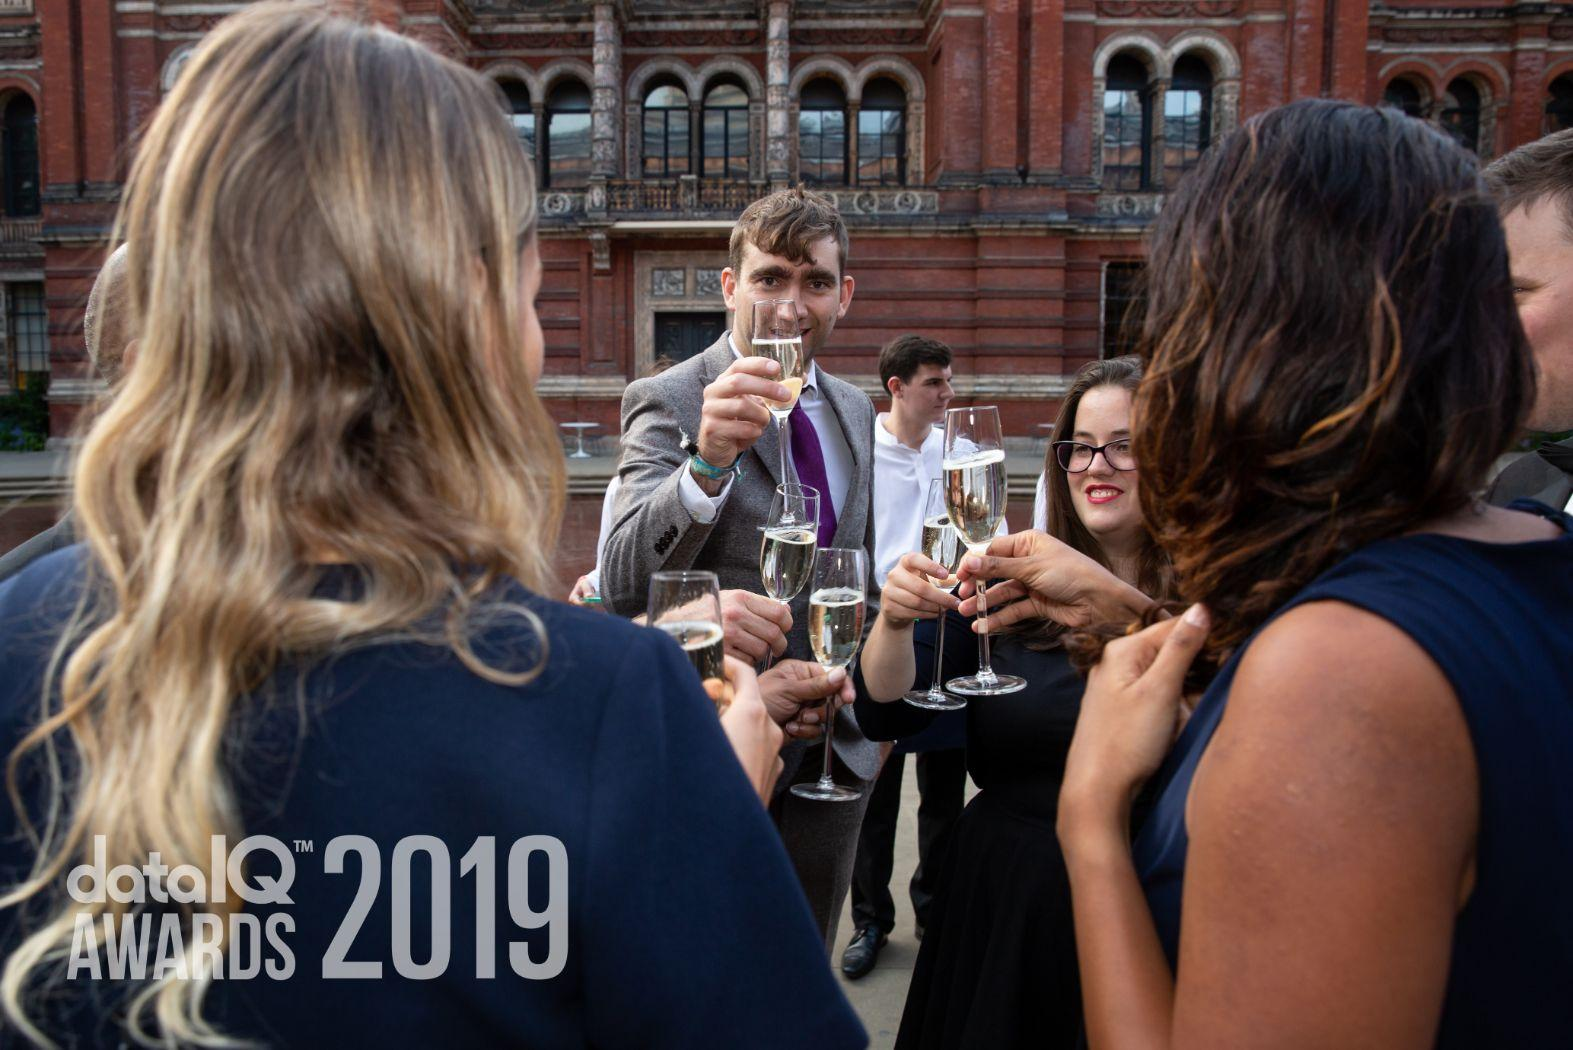 Awards 2019 Image 76